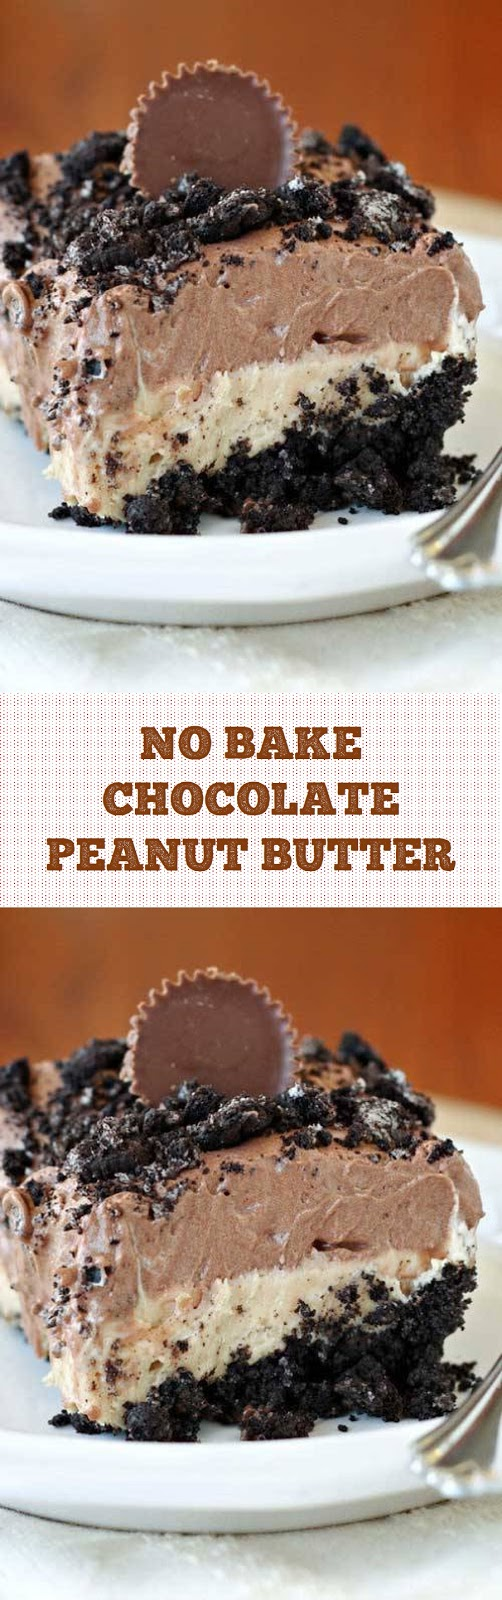 No Bake Chocolate Peanut Butter Dessert